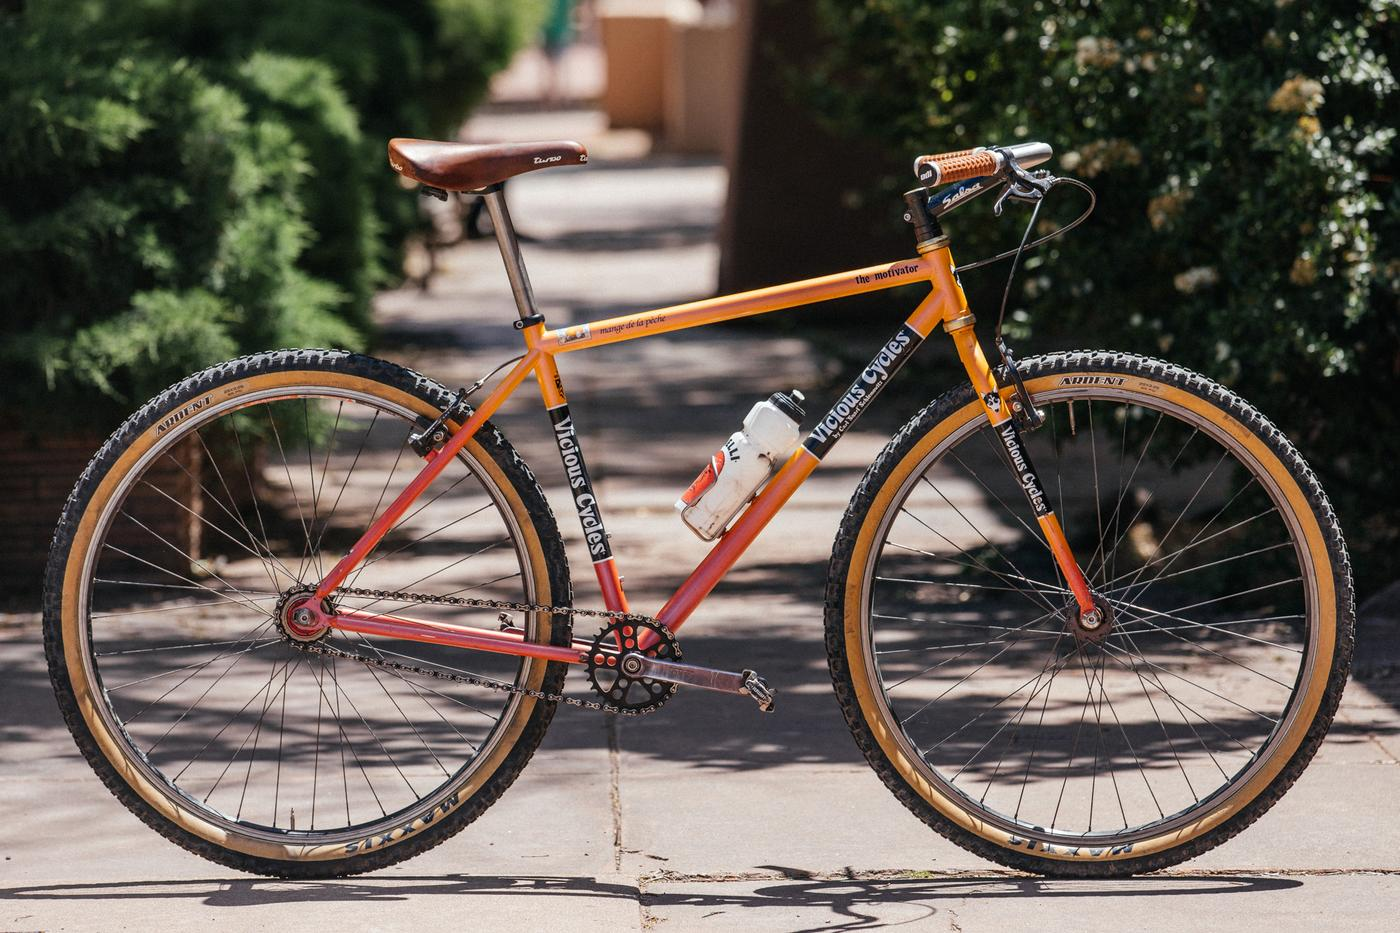 David's Creamsicle Vicious Cycles SS Cruiser